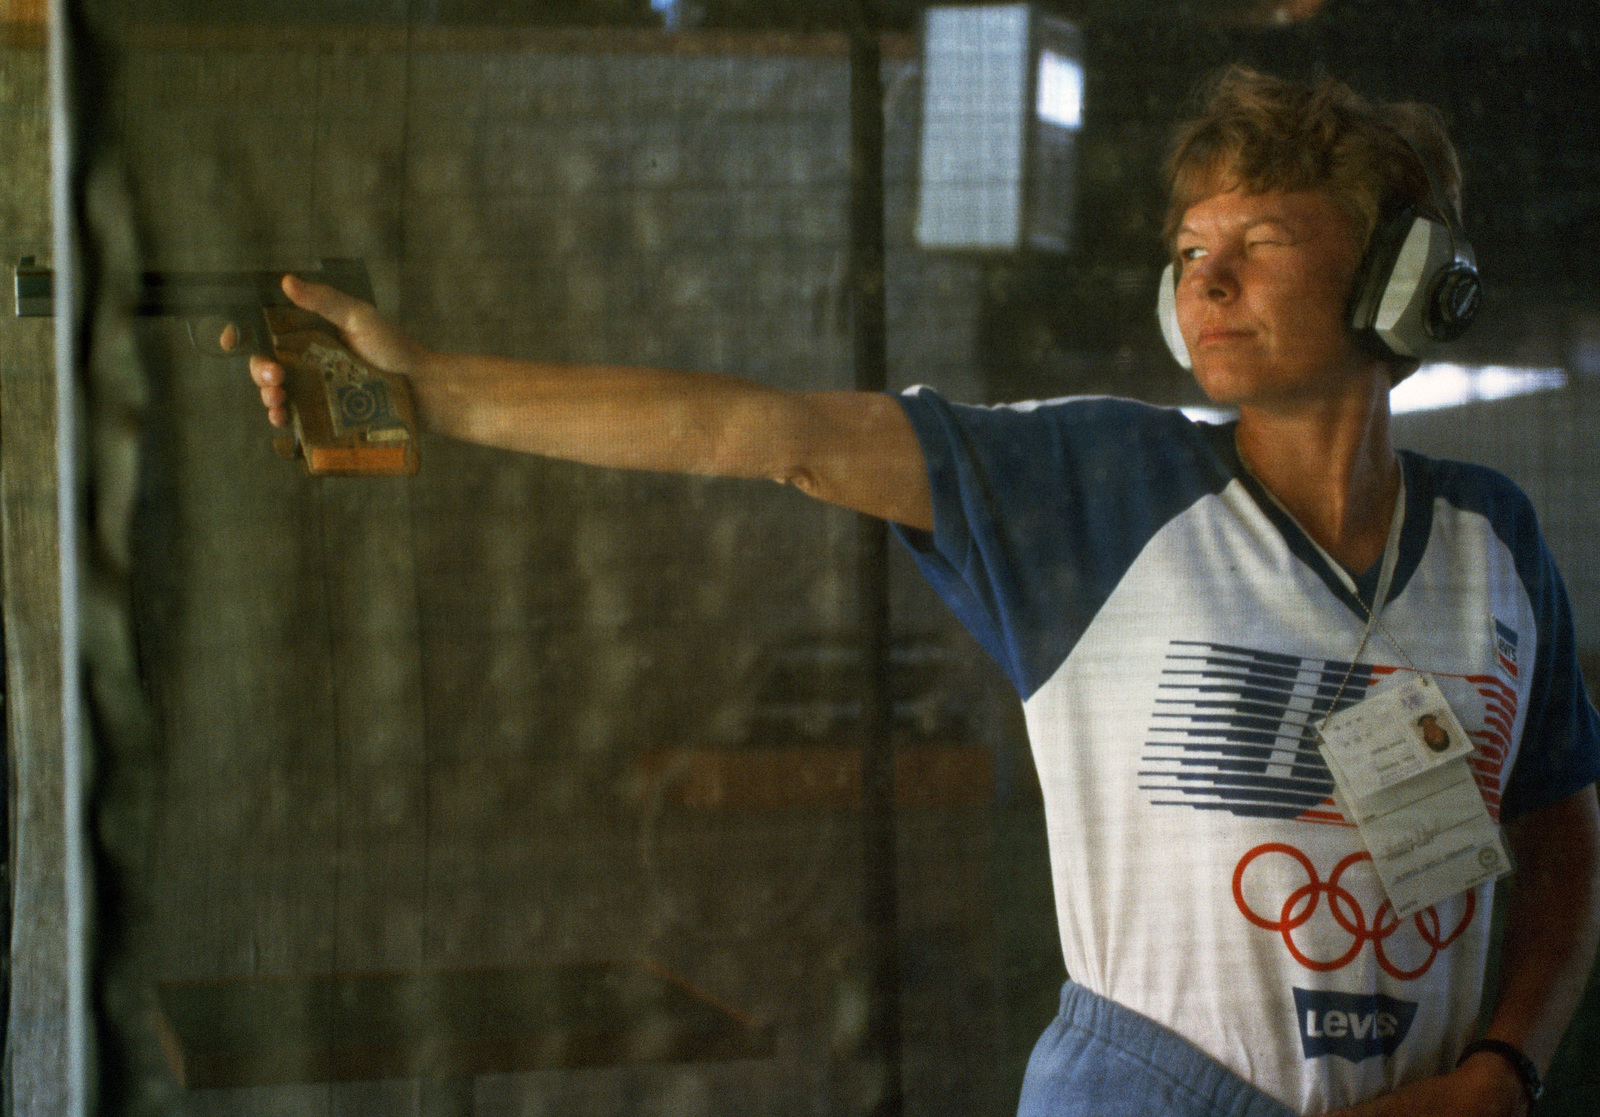 Army Reserve STAFF Sergeant Kim S. Dyer from Hewitt, Texas, participates in the sport pistol competition at the 1984 Summer Olympics